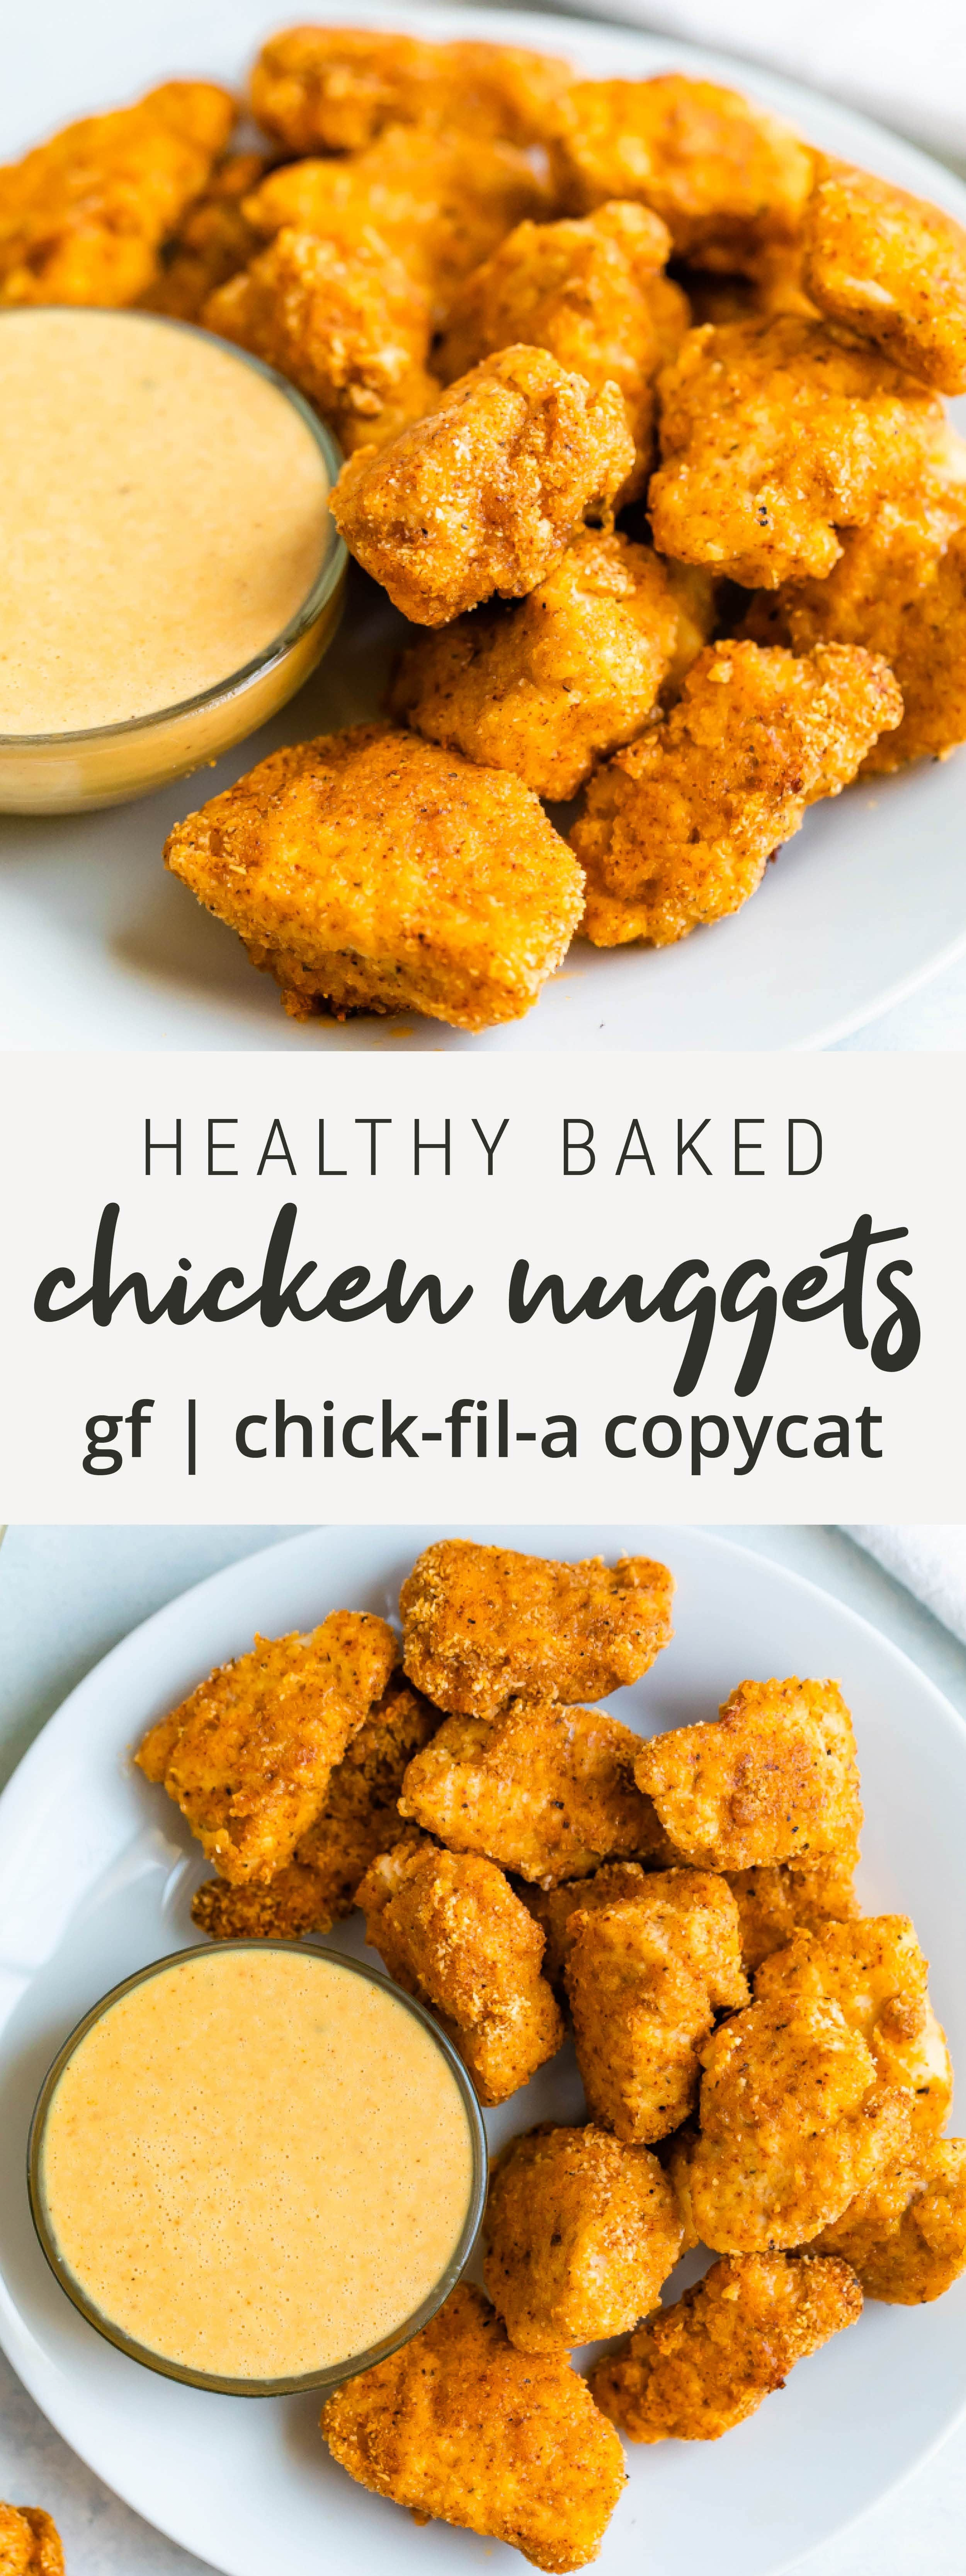 Healthy Baked Chicken Nuggets Eating Bird Food Recipe Homemade Chicken Nuggets Healthy Healthy Baked Chicken Healthy Baking